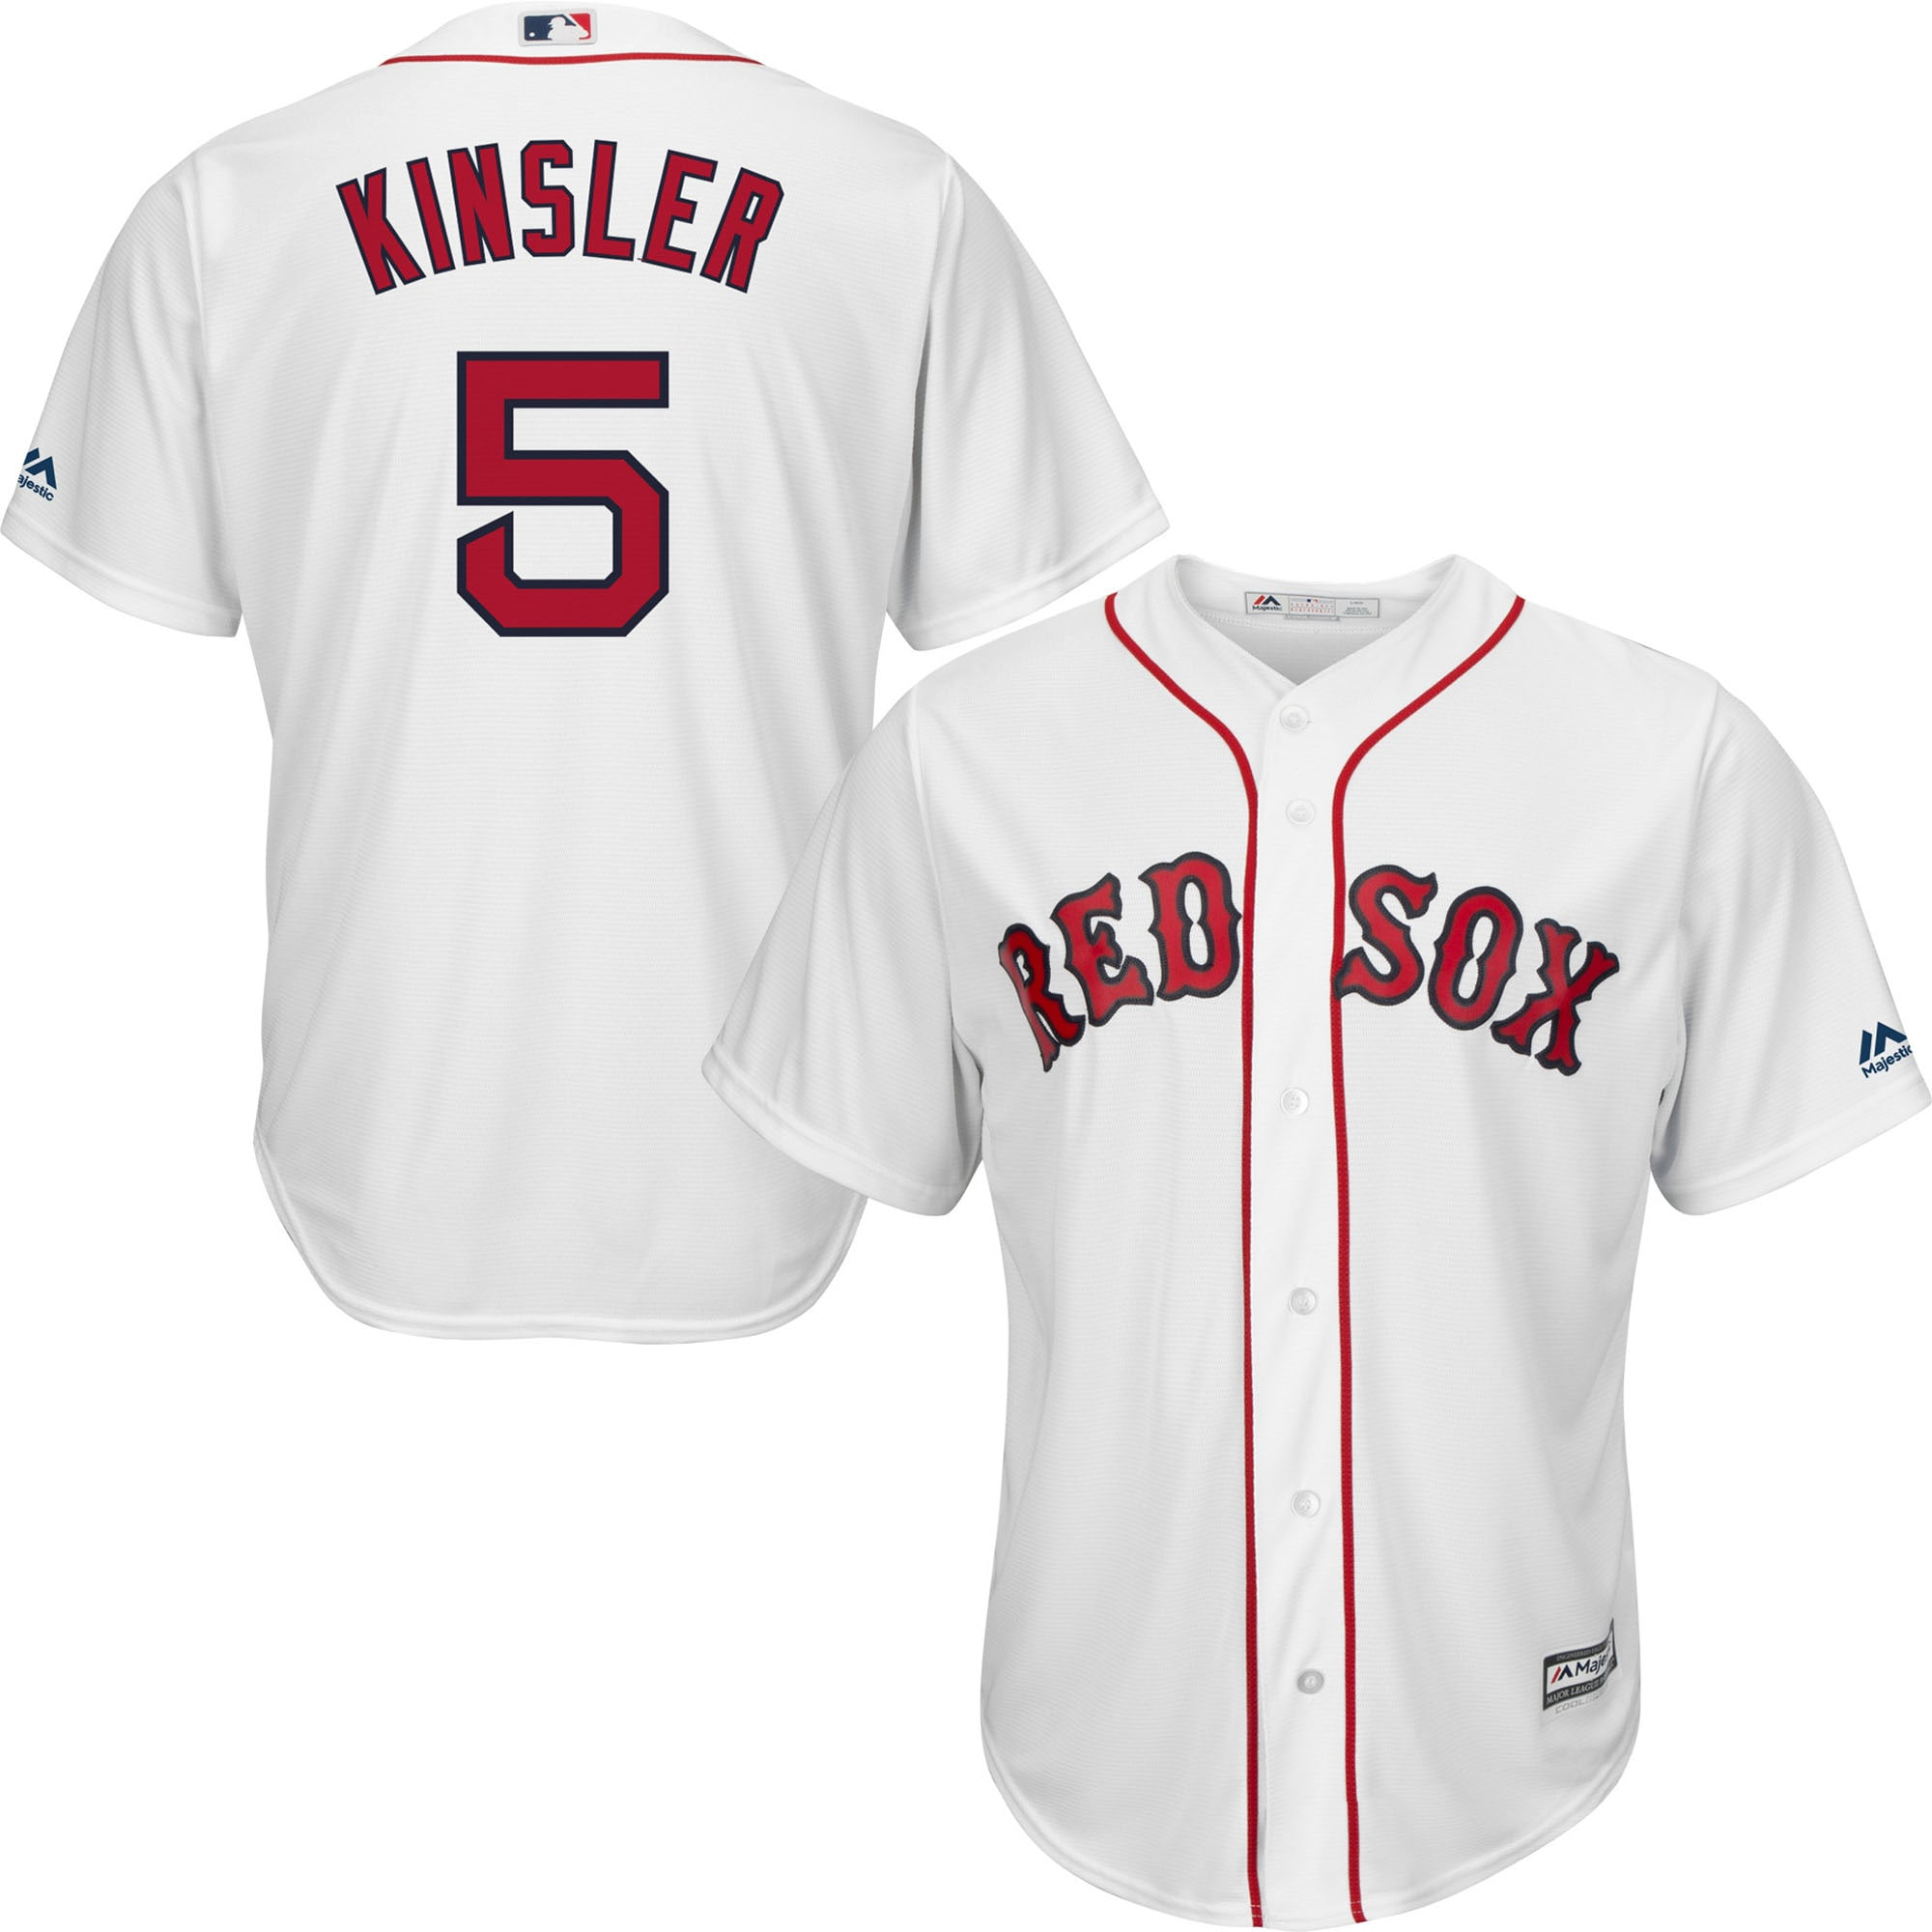 Ian Kinsler Boston Red Sox Majestic Home Official Cool Base Player Jersey - White